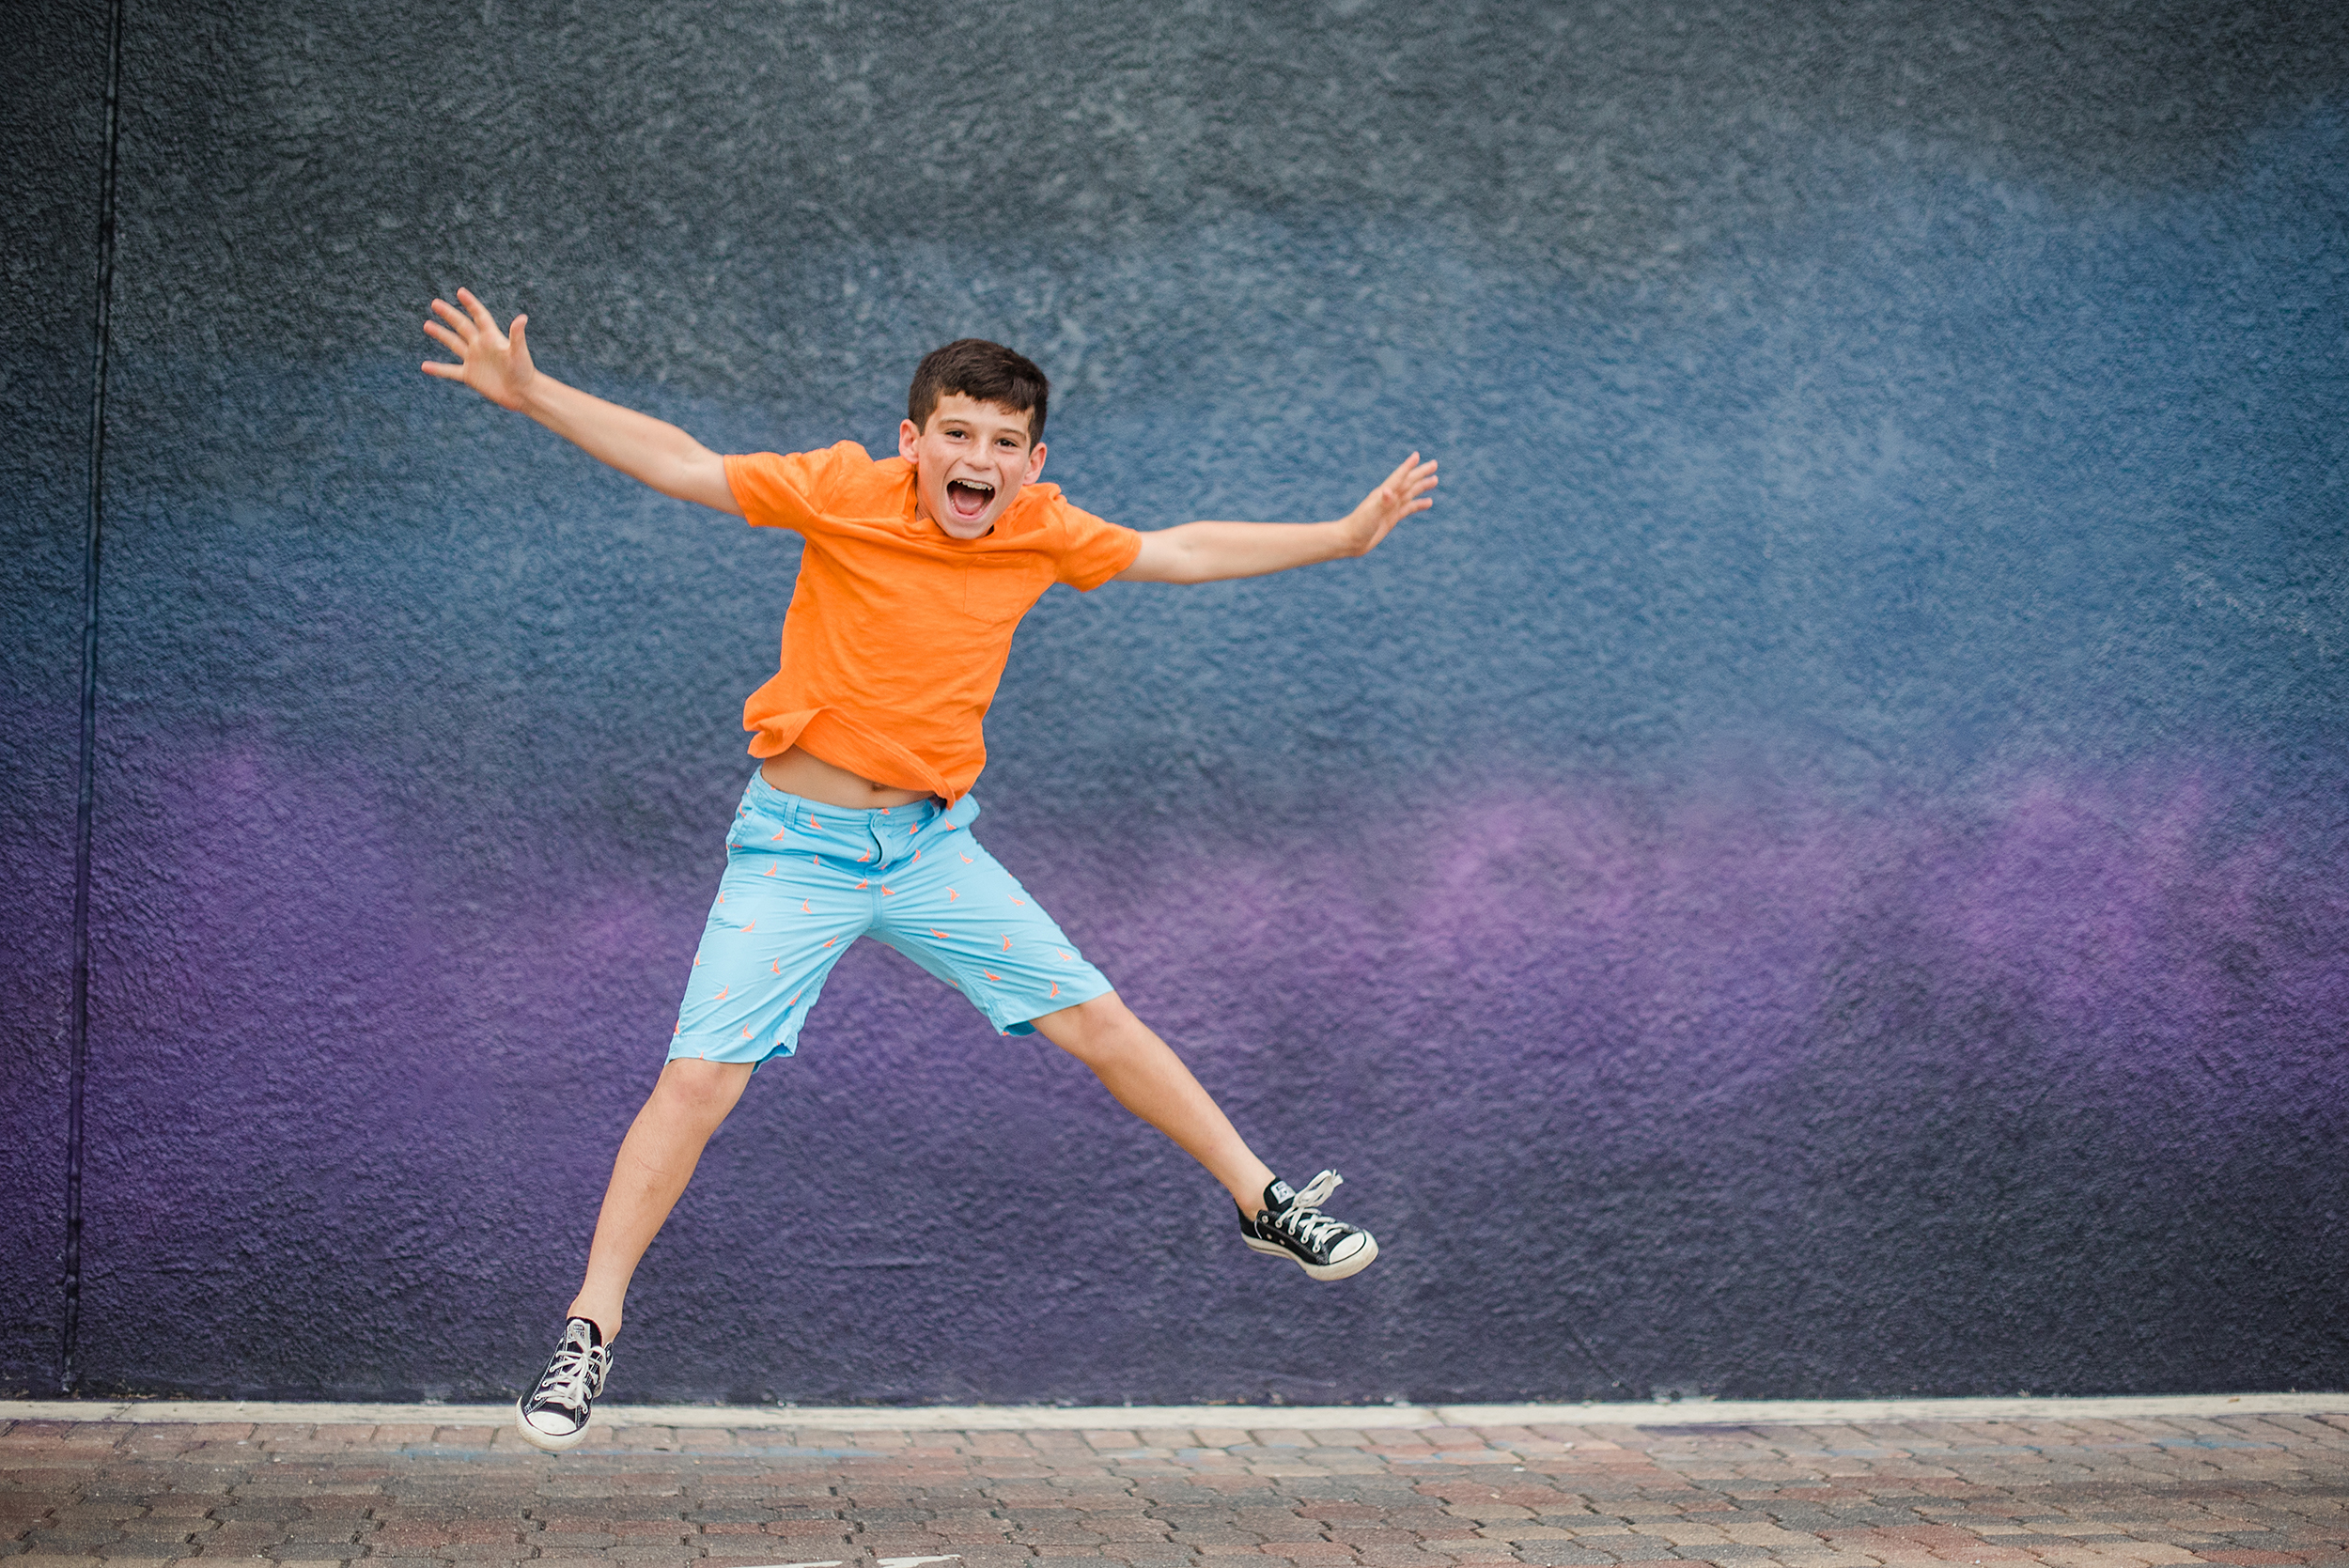 teens-tweens-teenagers-photography-south-florida-alison-frank-photography_31.jpg